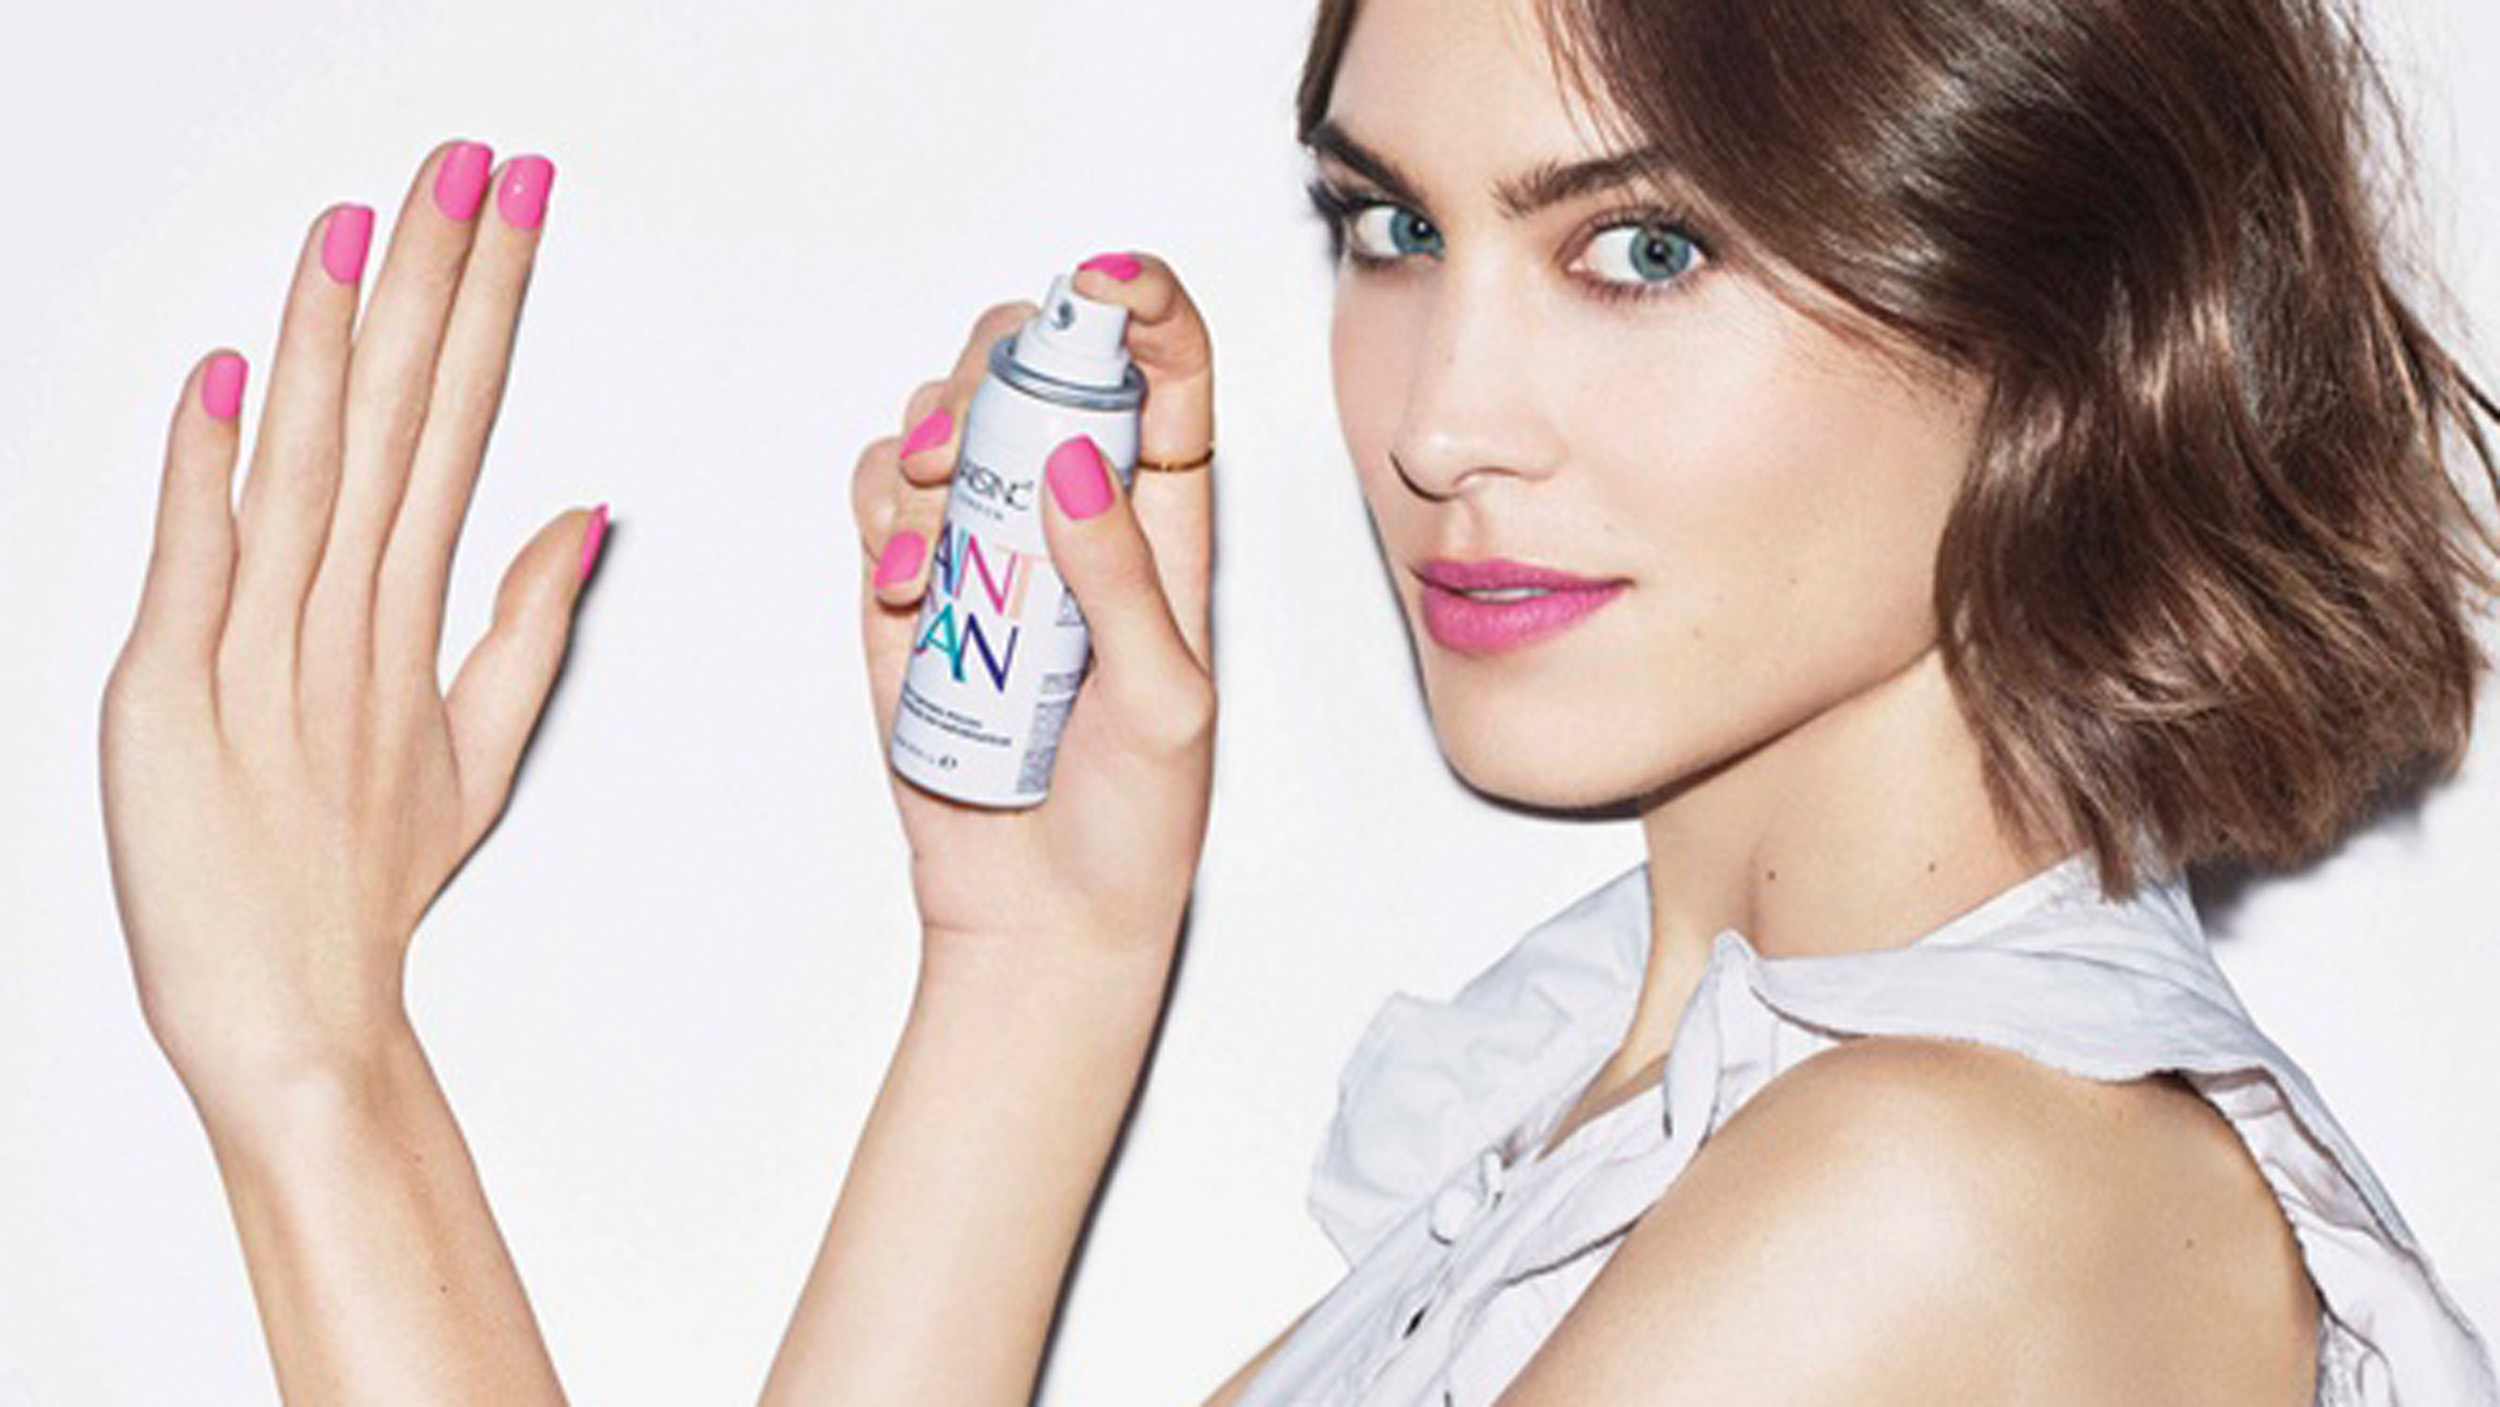 Inverse hair conditioning iron, spray-on nail polish & more wacky trends